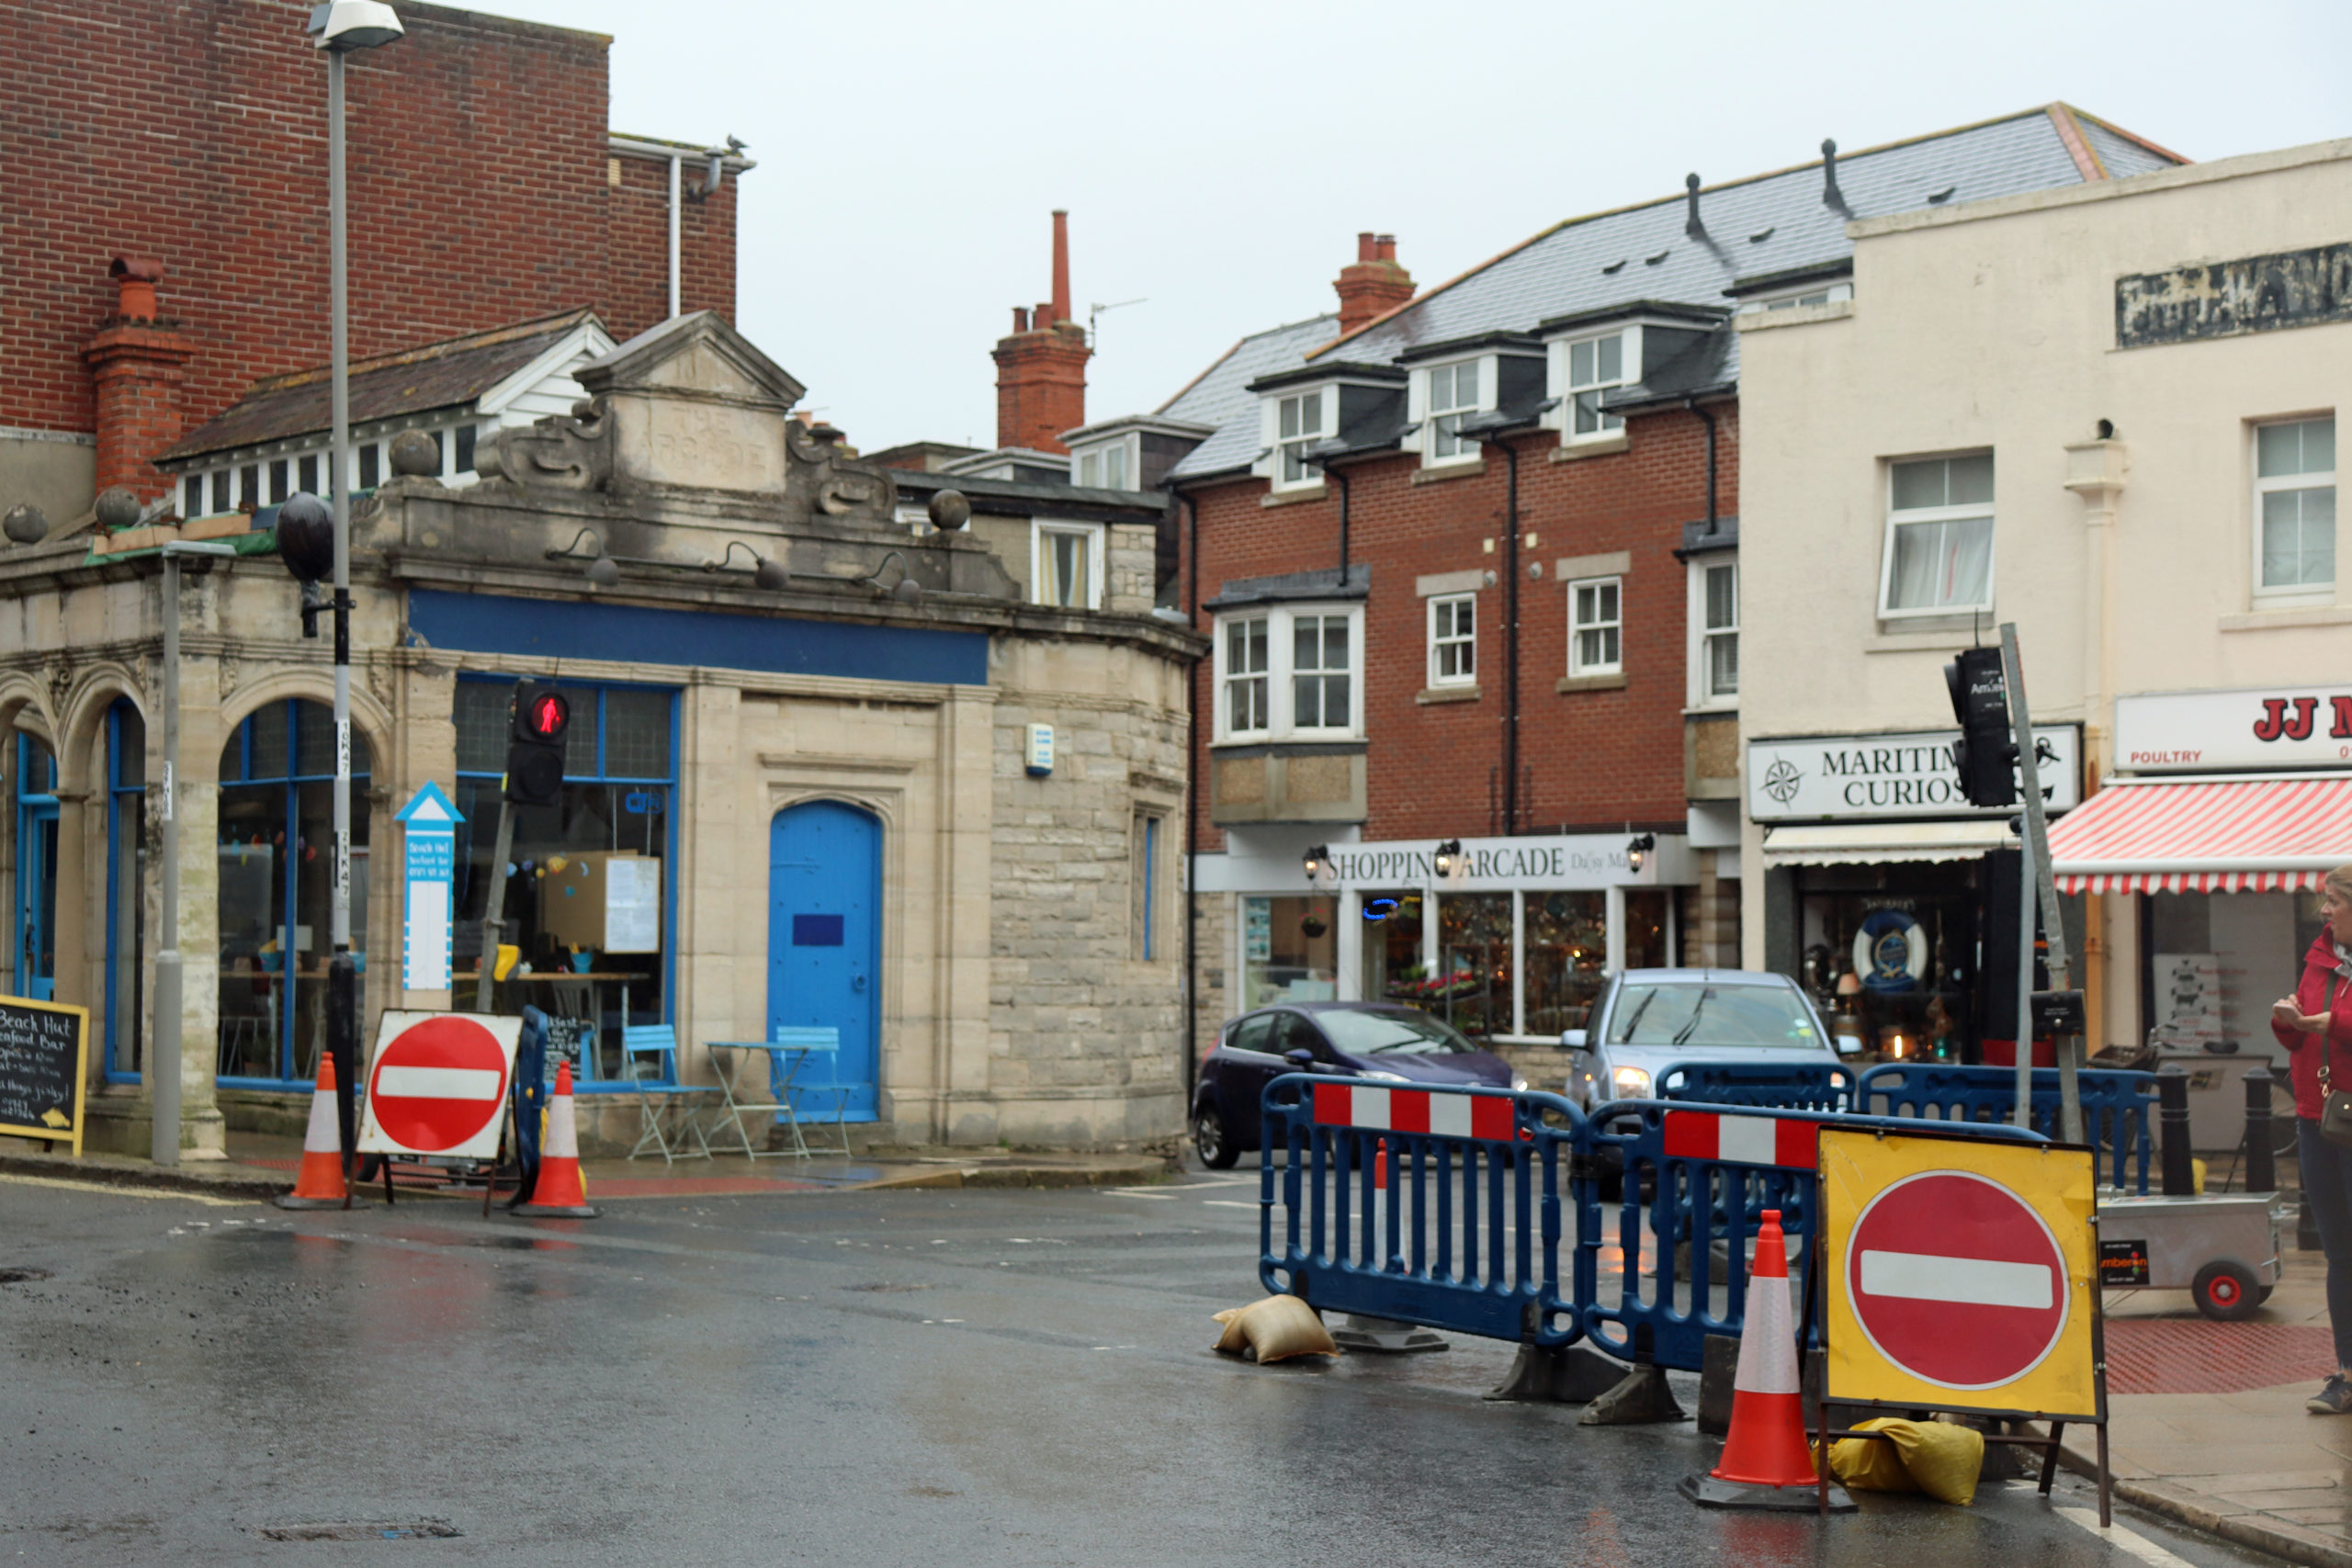 Traffic lights at roadworks in High Street